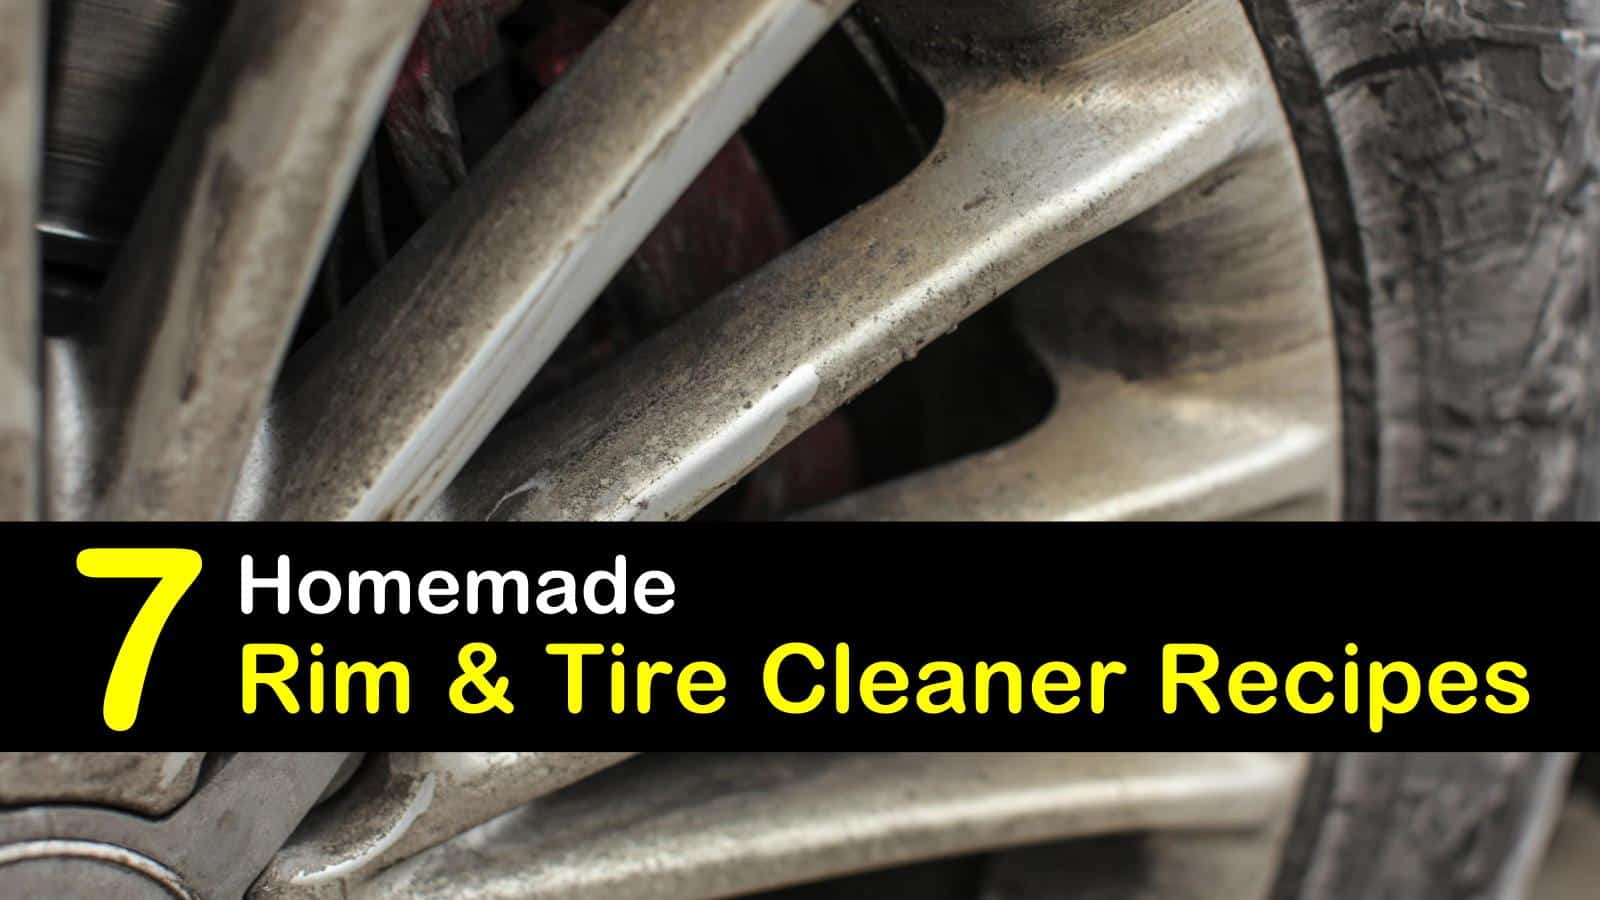 Homemade Rim And Tire Cleaner Recipes 7 Ways To Remove Grease And Dirt From Your Wheels